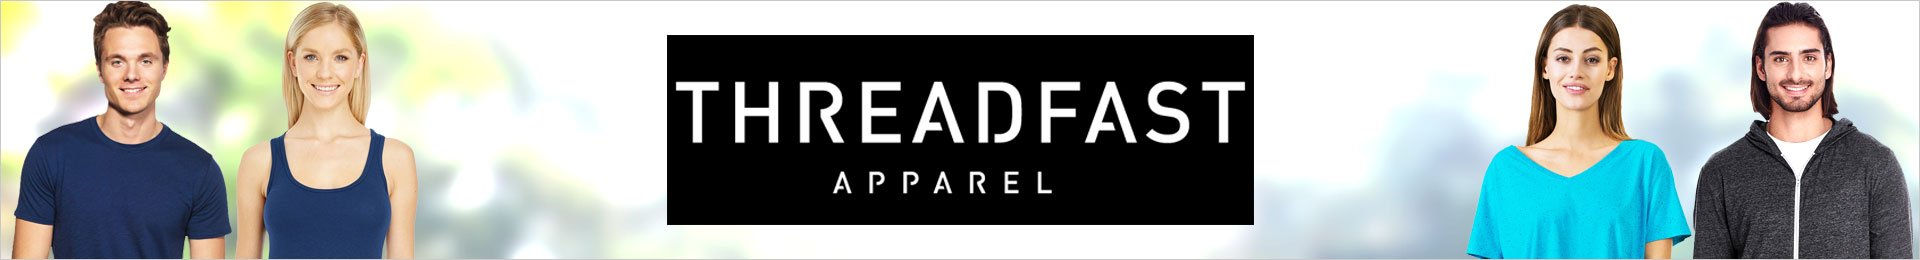 Threadfast Apparel Hoodies